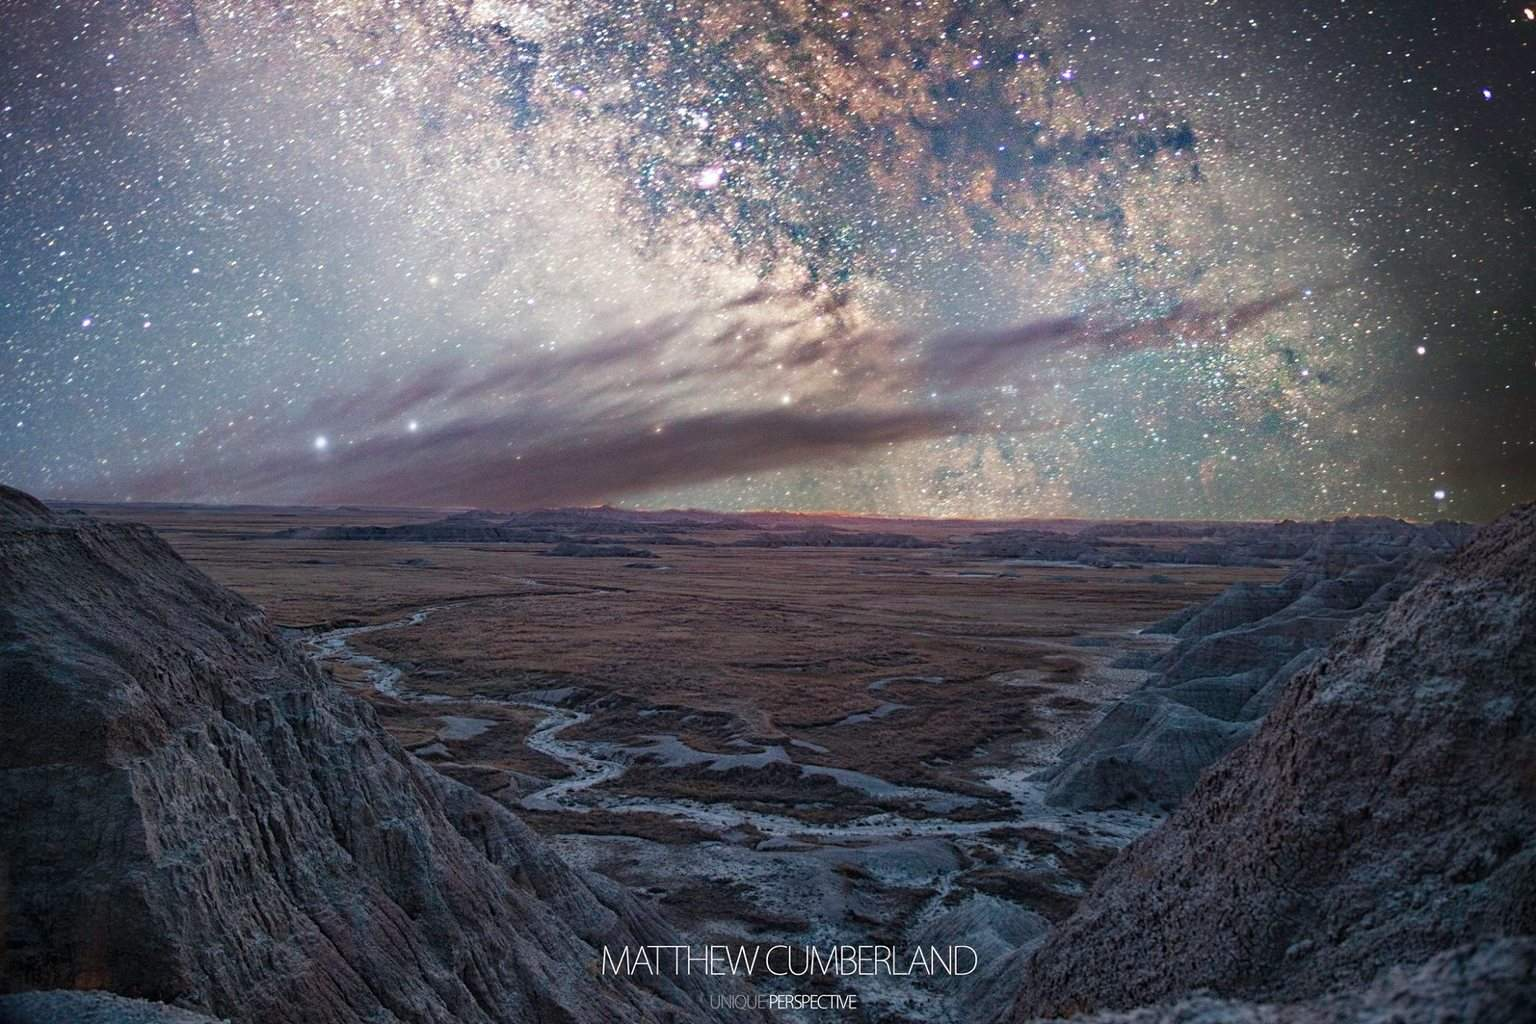 Milky Way rising over the Badlands of South Dakota from my trip out there last week.